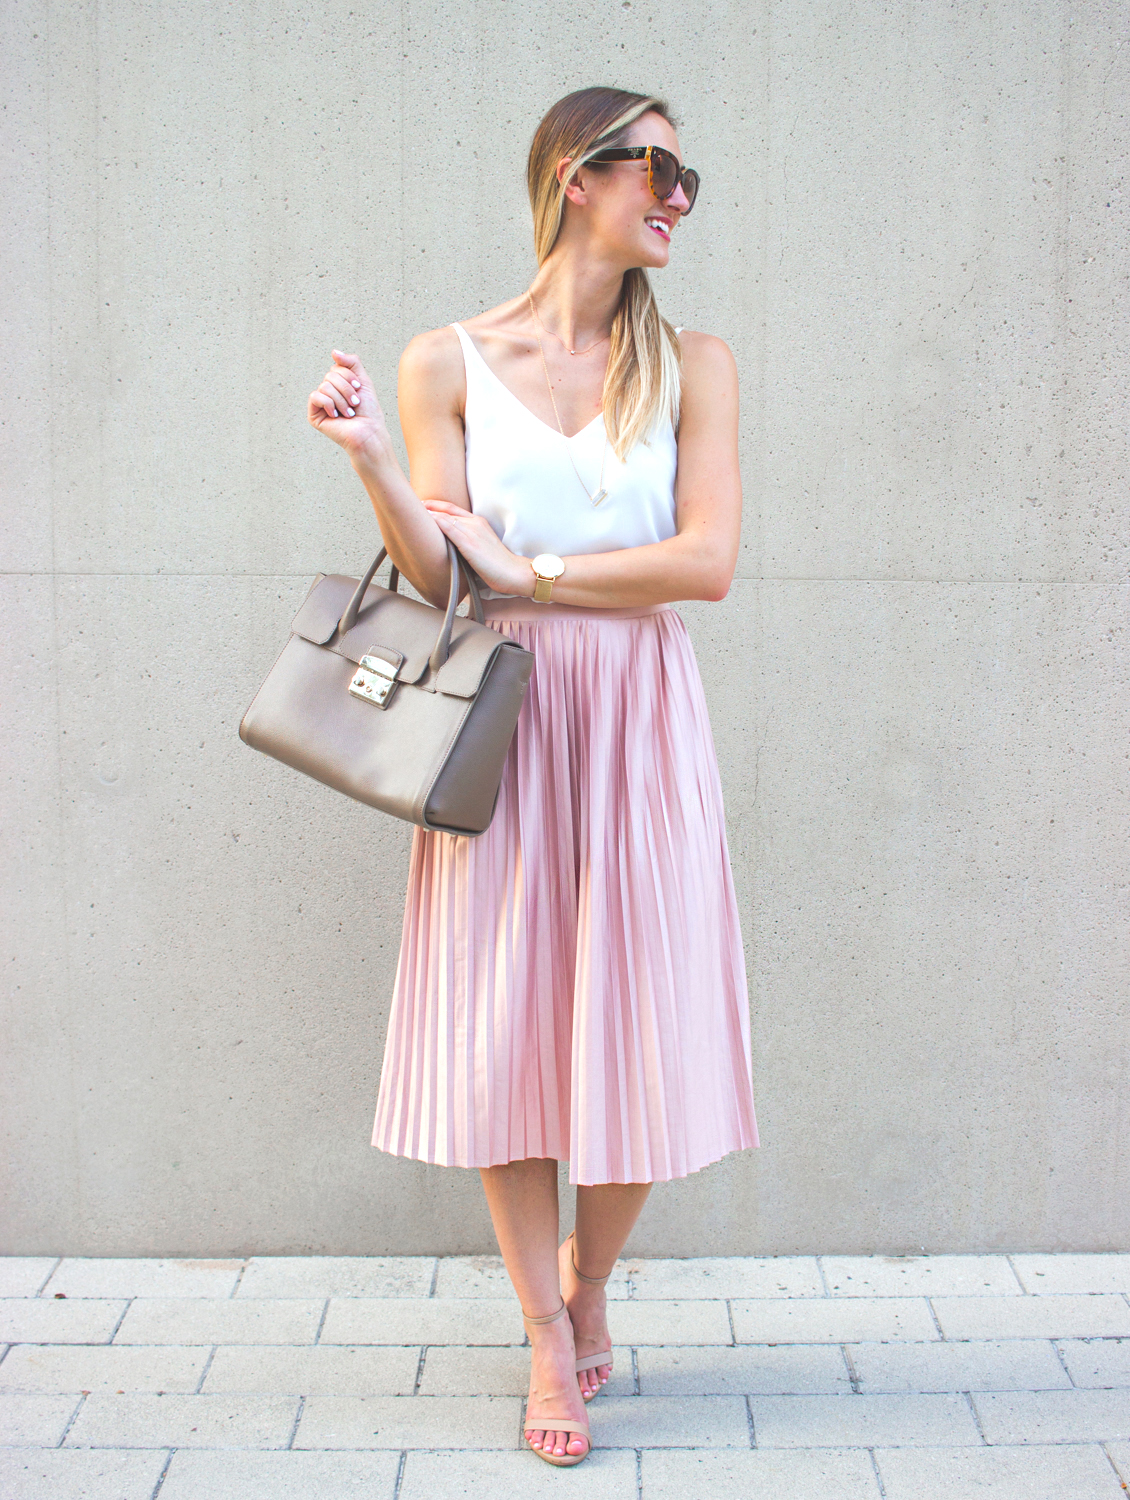 livvyland-blog-olivia-watson-topshop-blush-pink-pleated-high-waist-skirt-white-top-girly-feminine-outfit-5